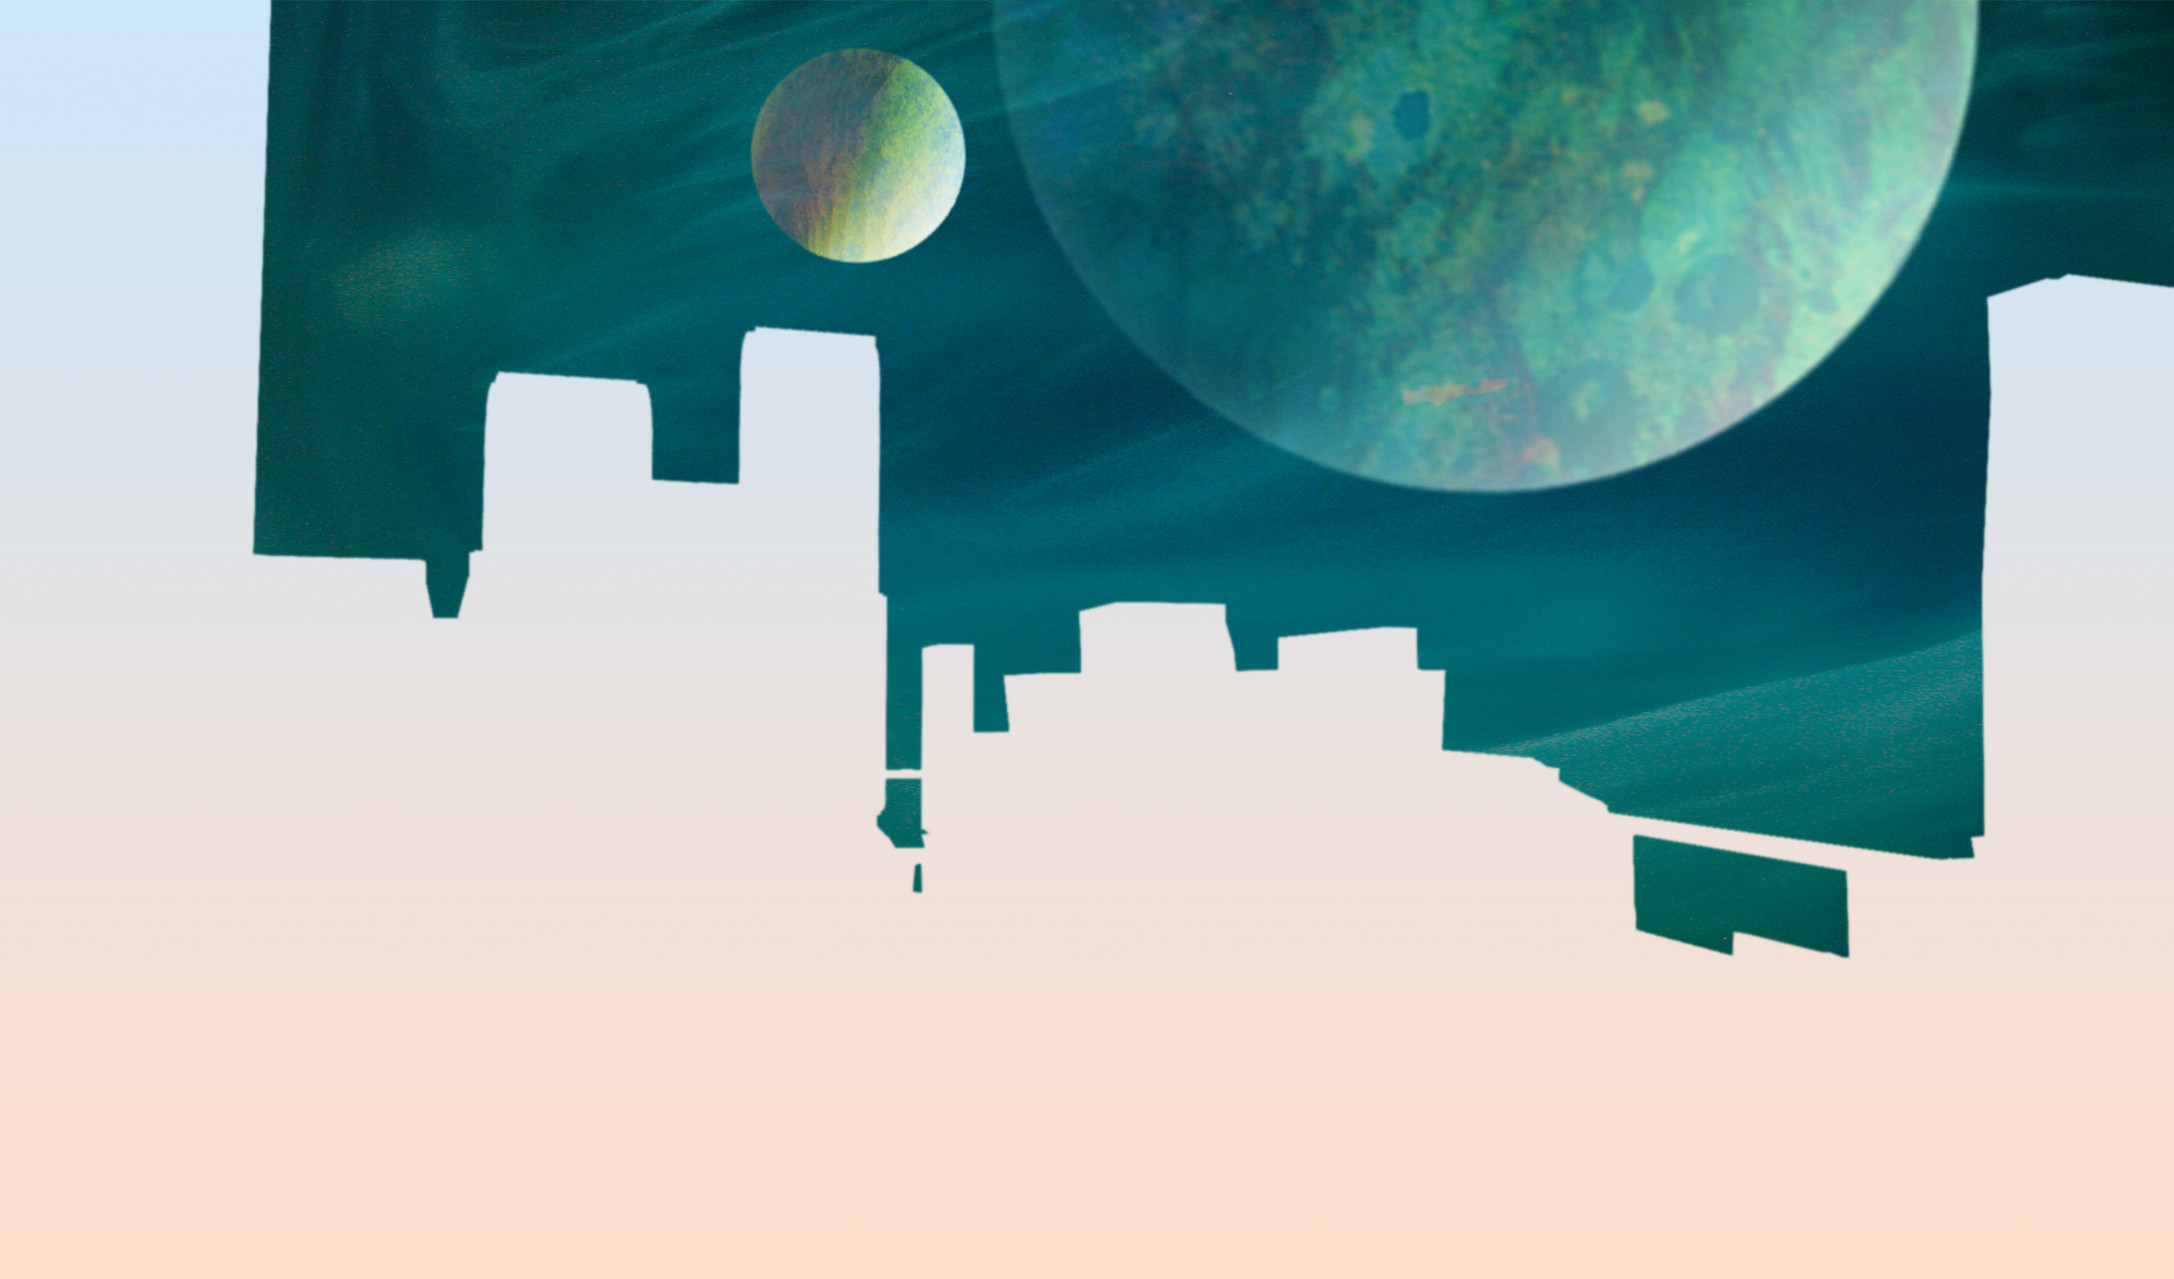 Planets from my Photoshop planet builder added.